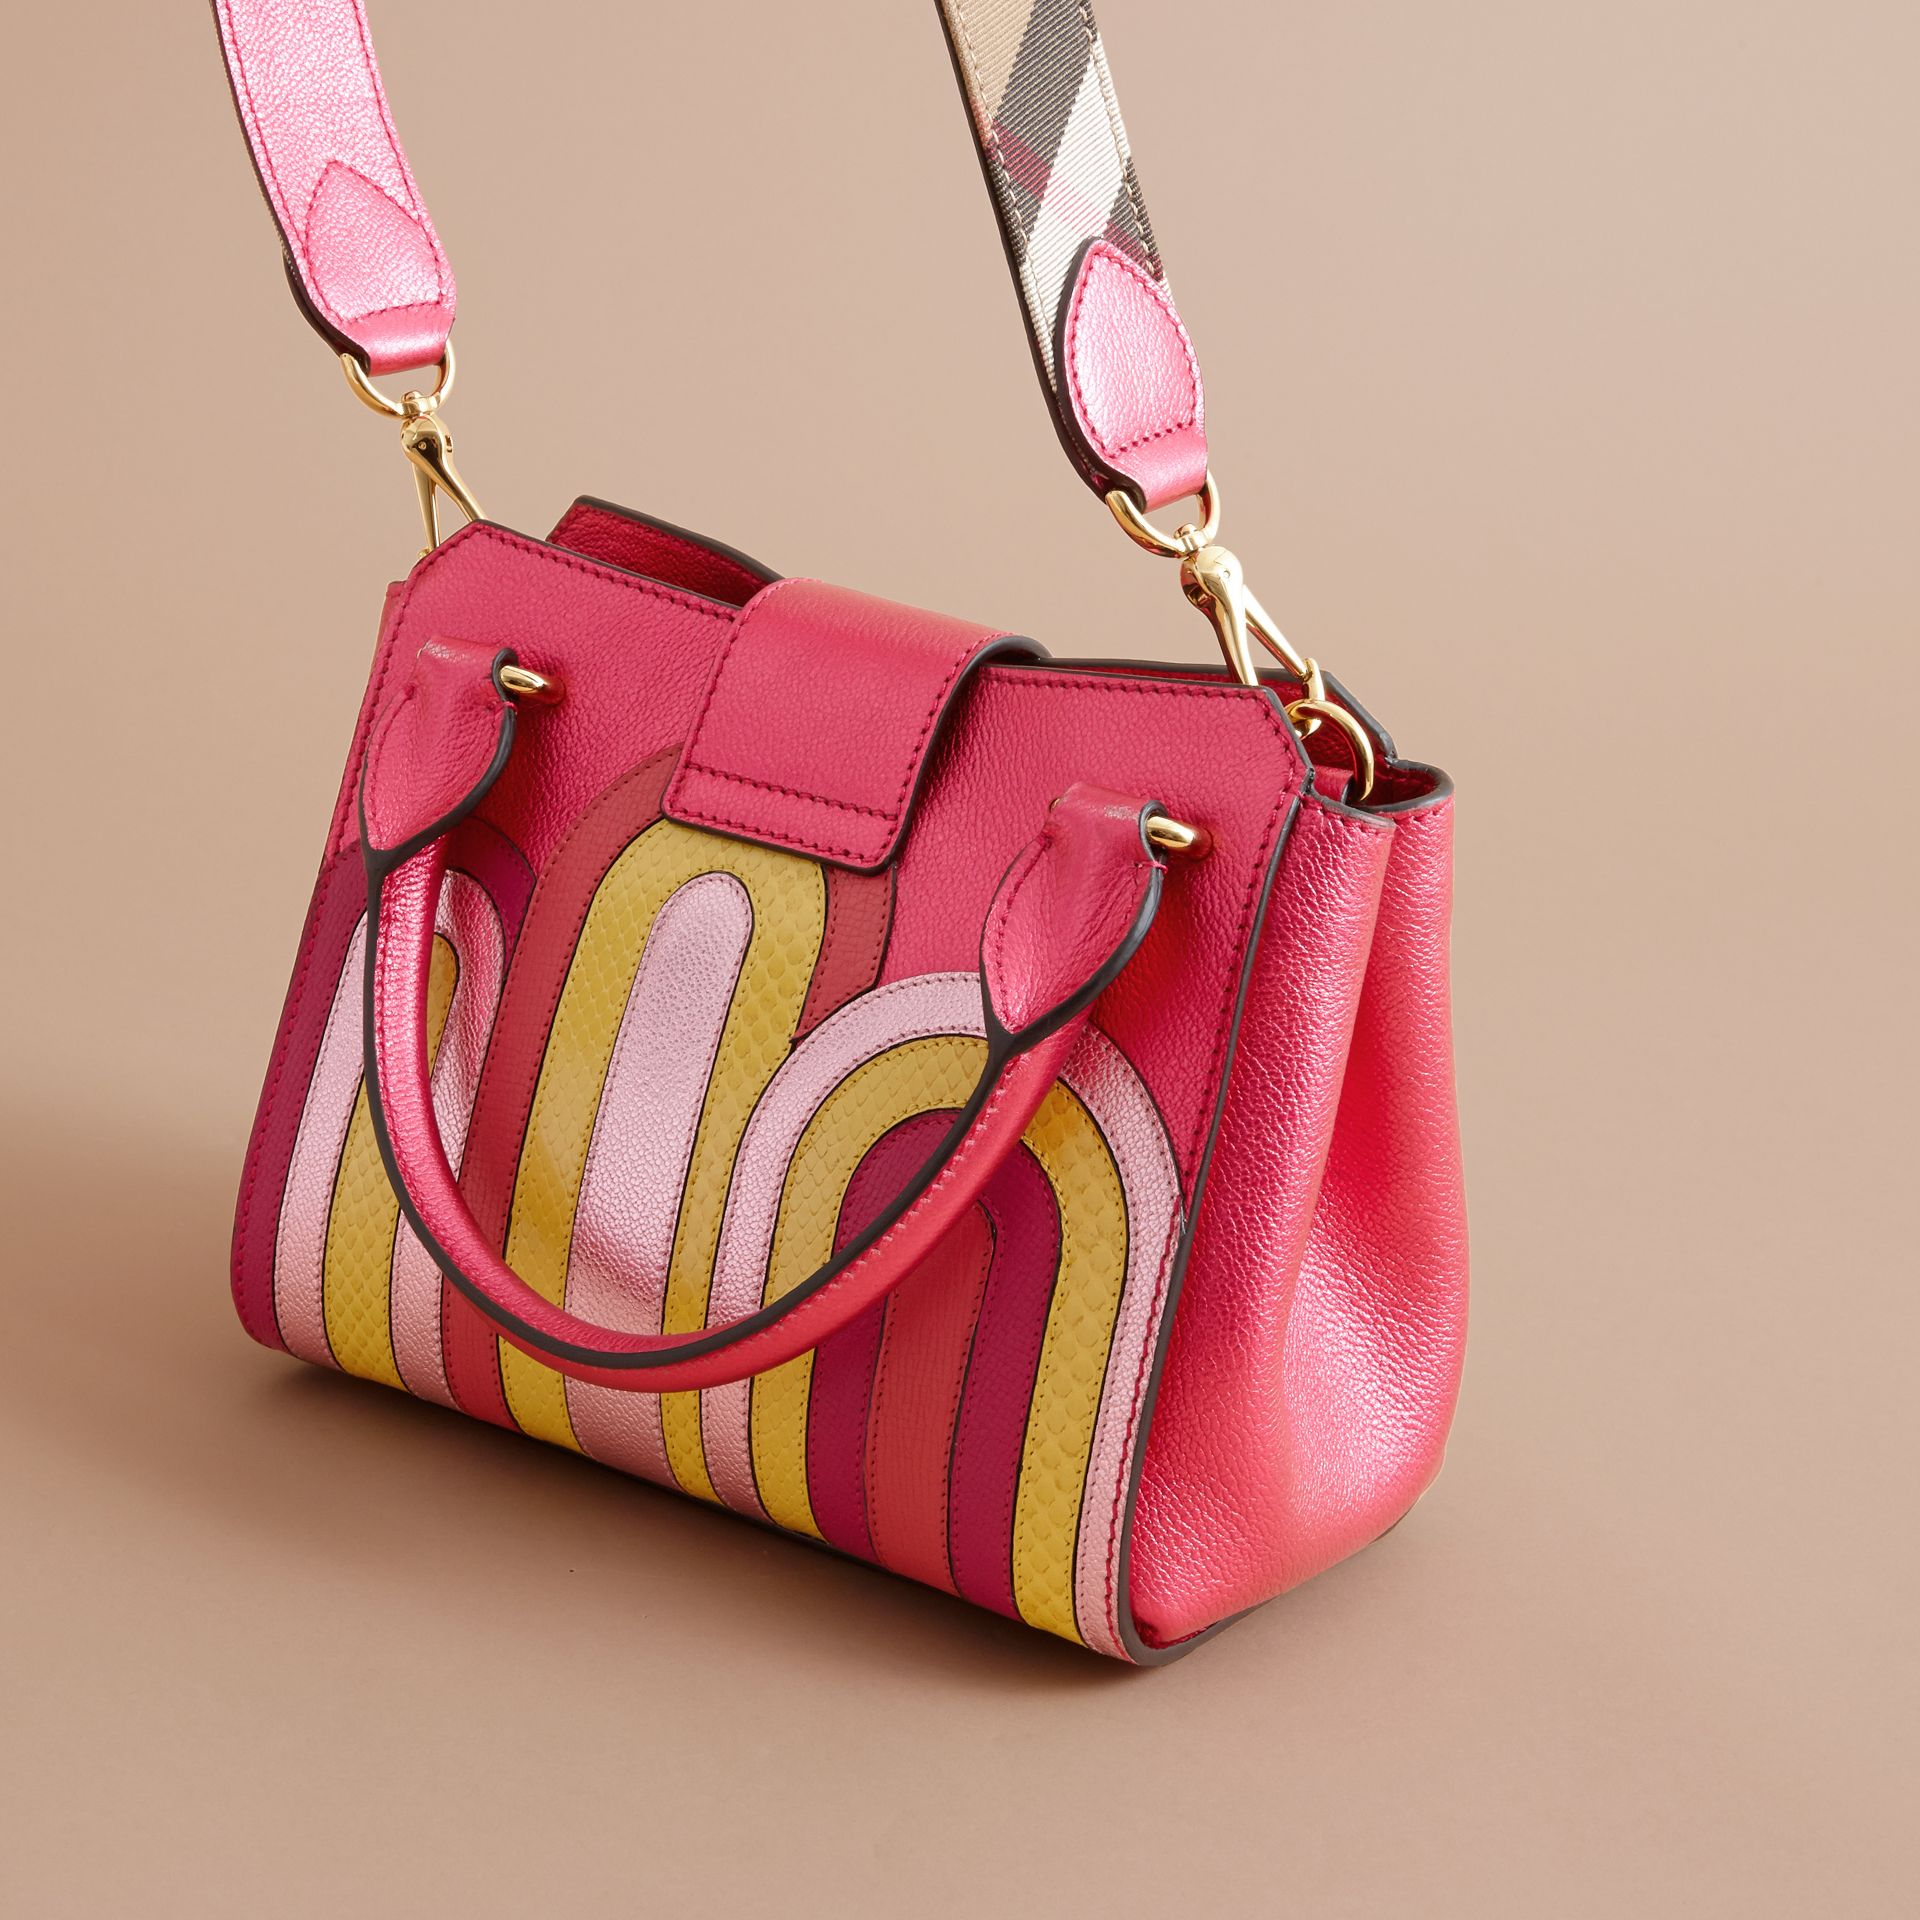 The Small Buckle Tote in Metallic Leather with Snakeskin Appliqué - gallery image 5